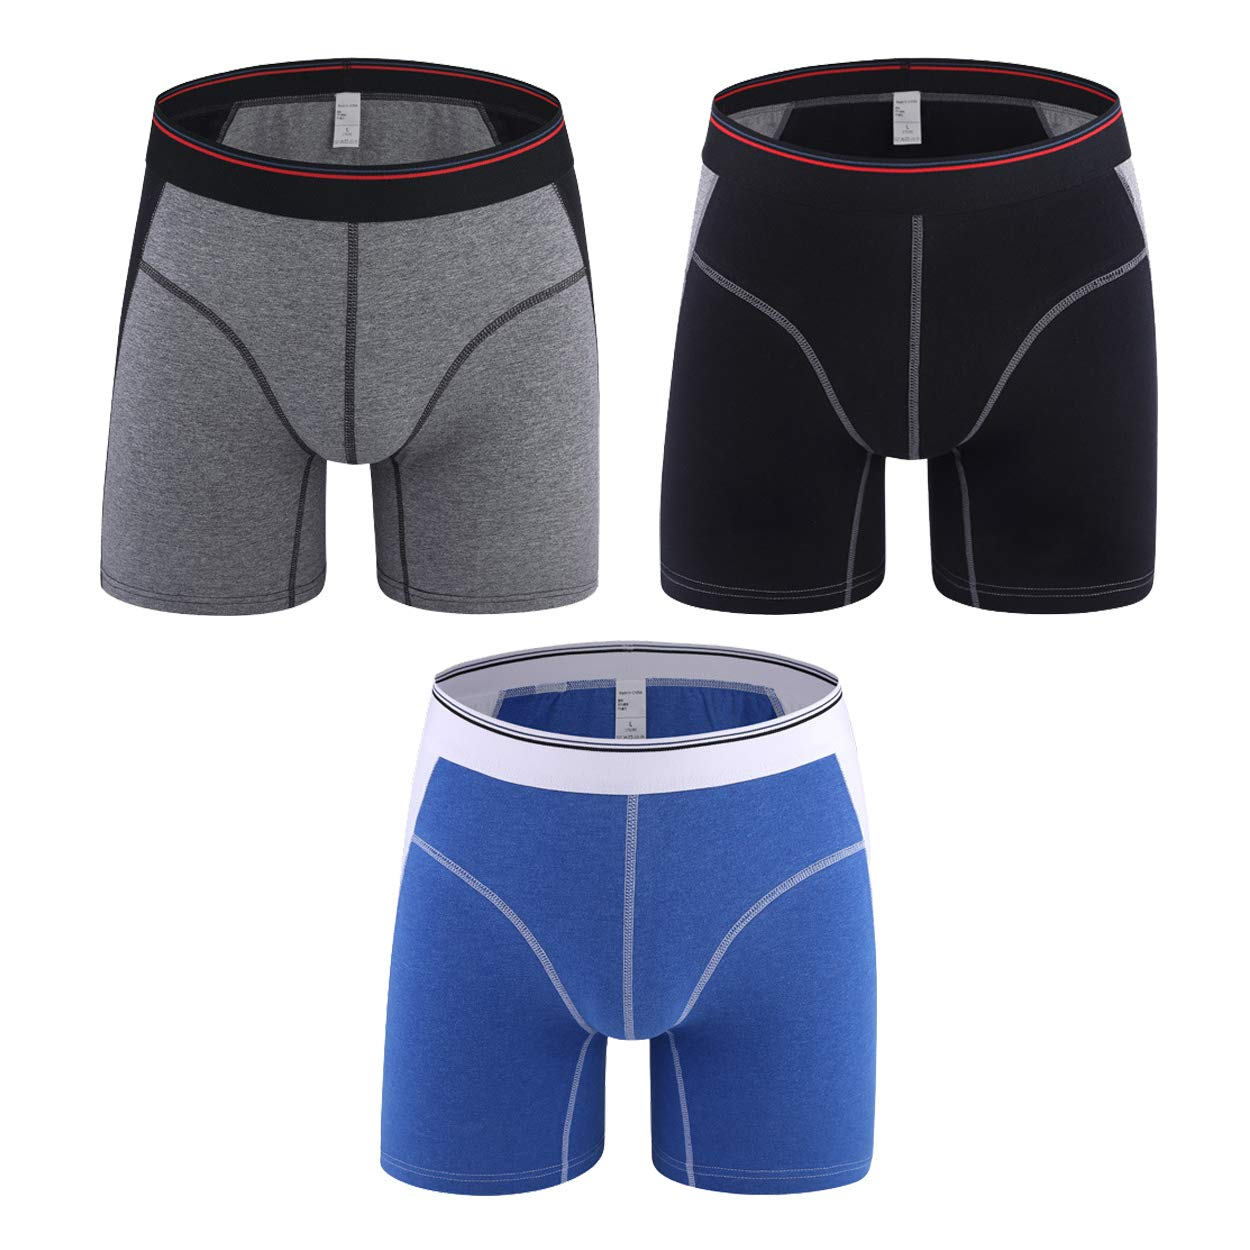 Hot Selling S Cotton Antibacterial Comfortable Long Leg Mens Boxers Shorts Male Underpants Six Colors Size M To Xxxl Underwear & Sleepwears Men's Underwear